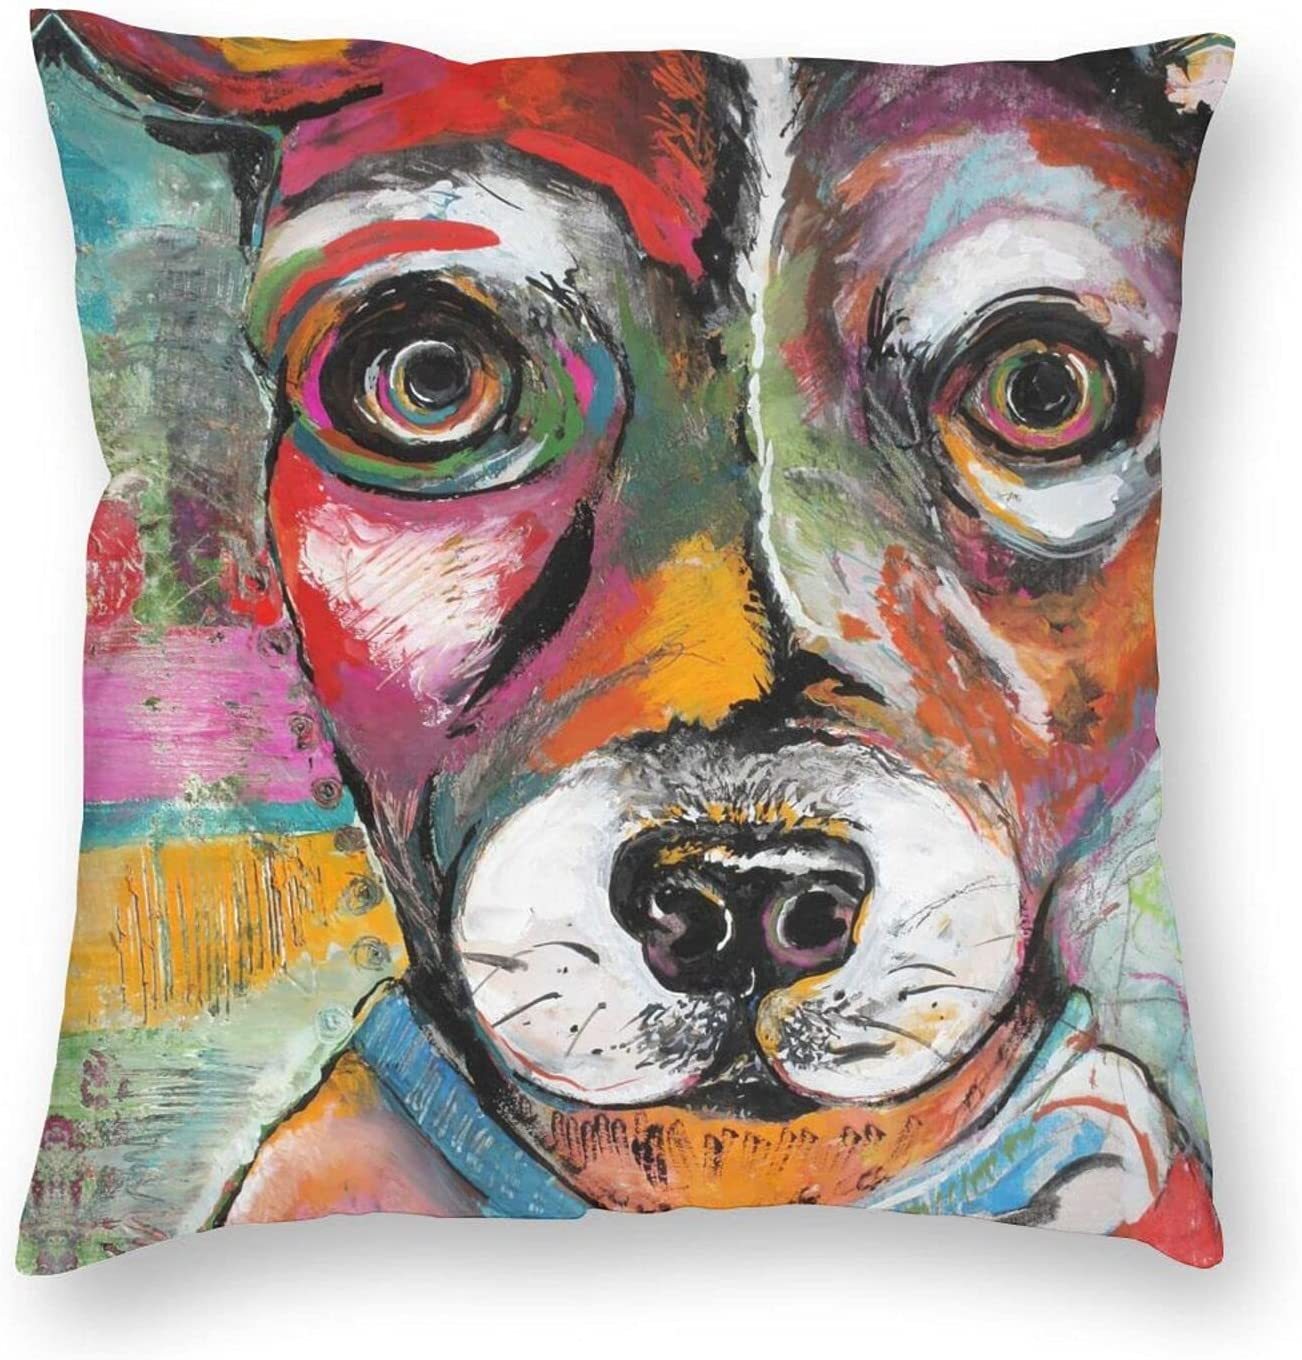 WEADSFCD Painting Rat Terrier Pillow Covers 16